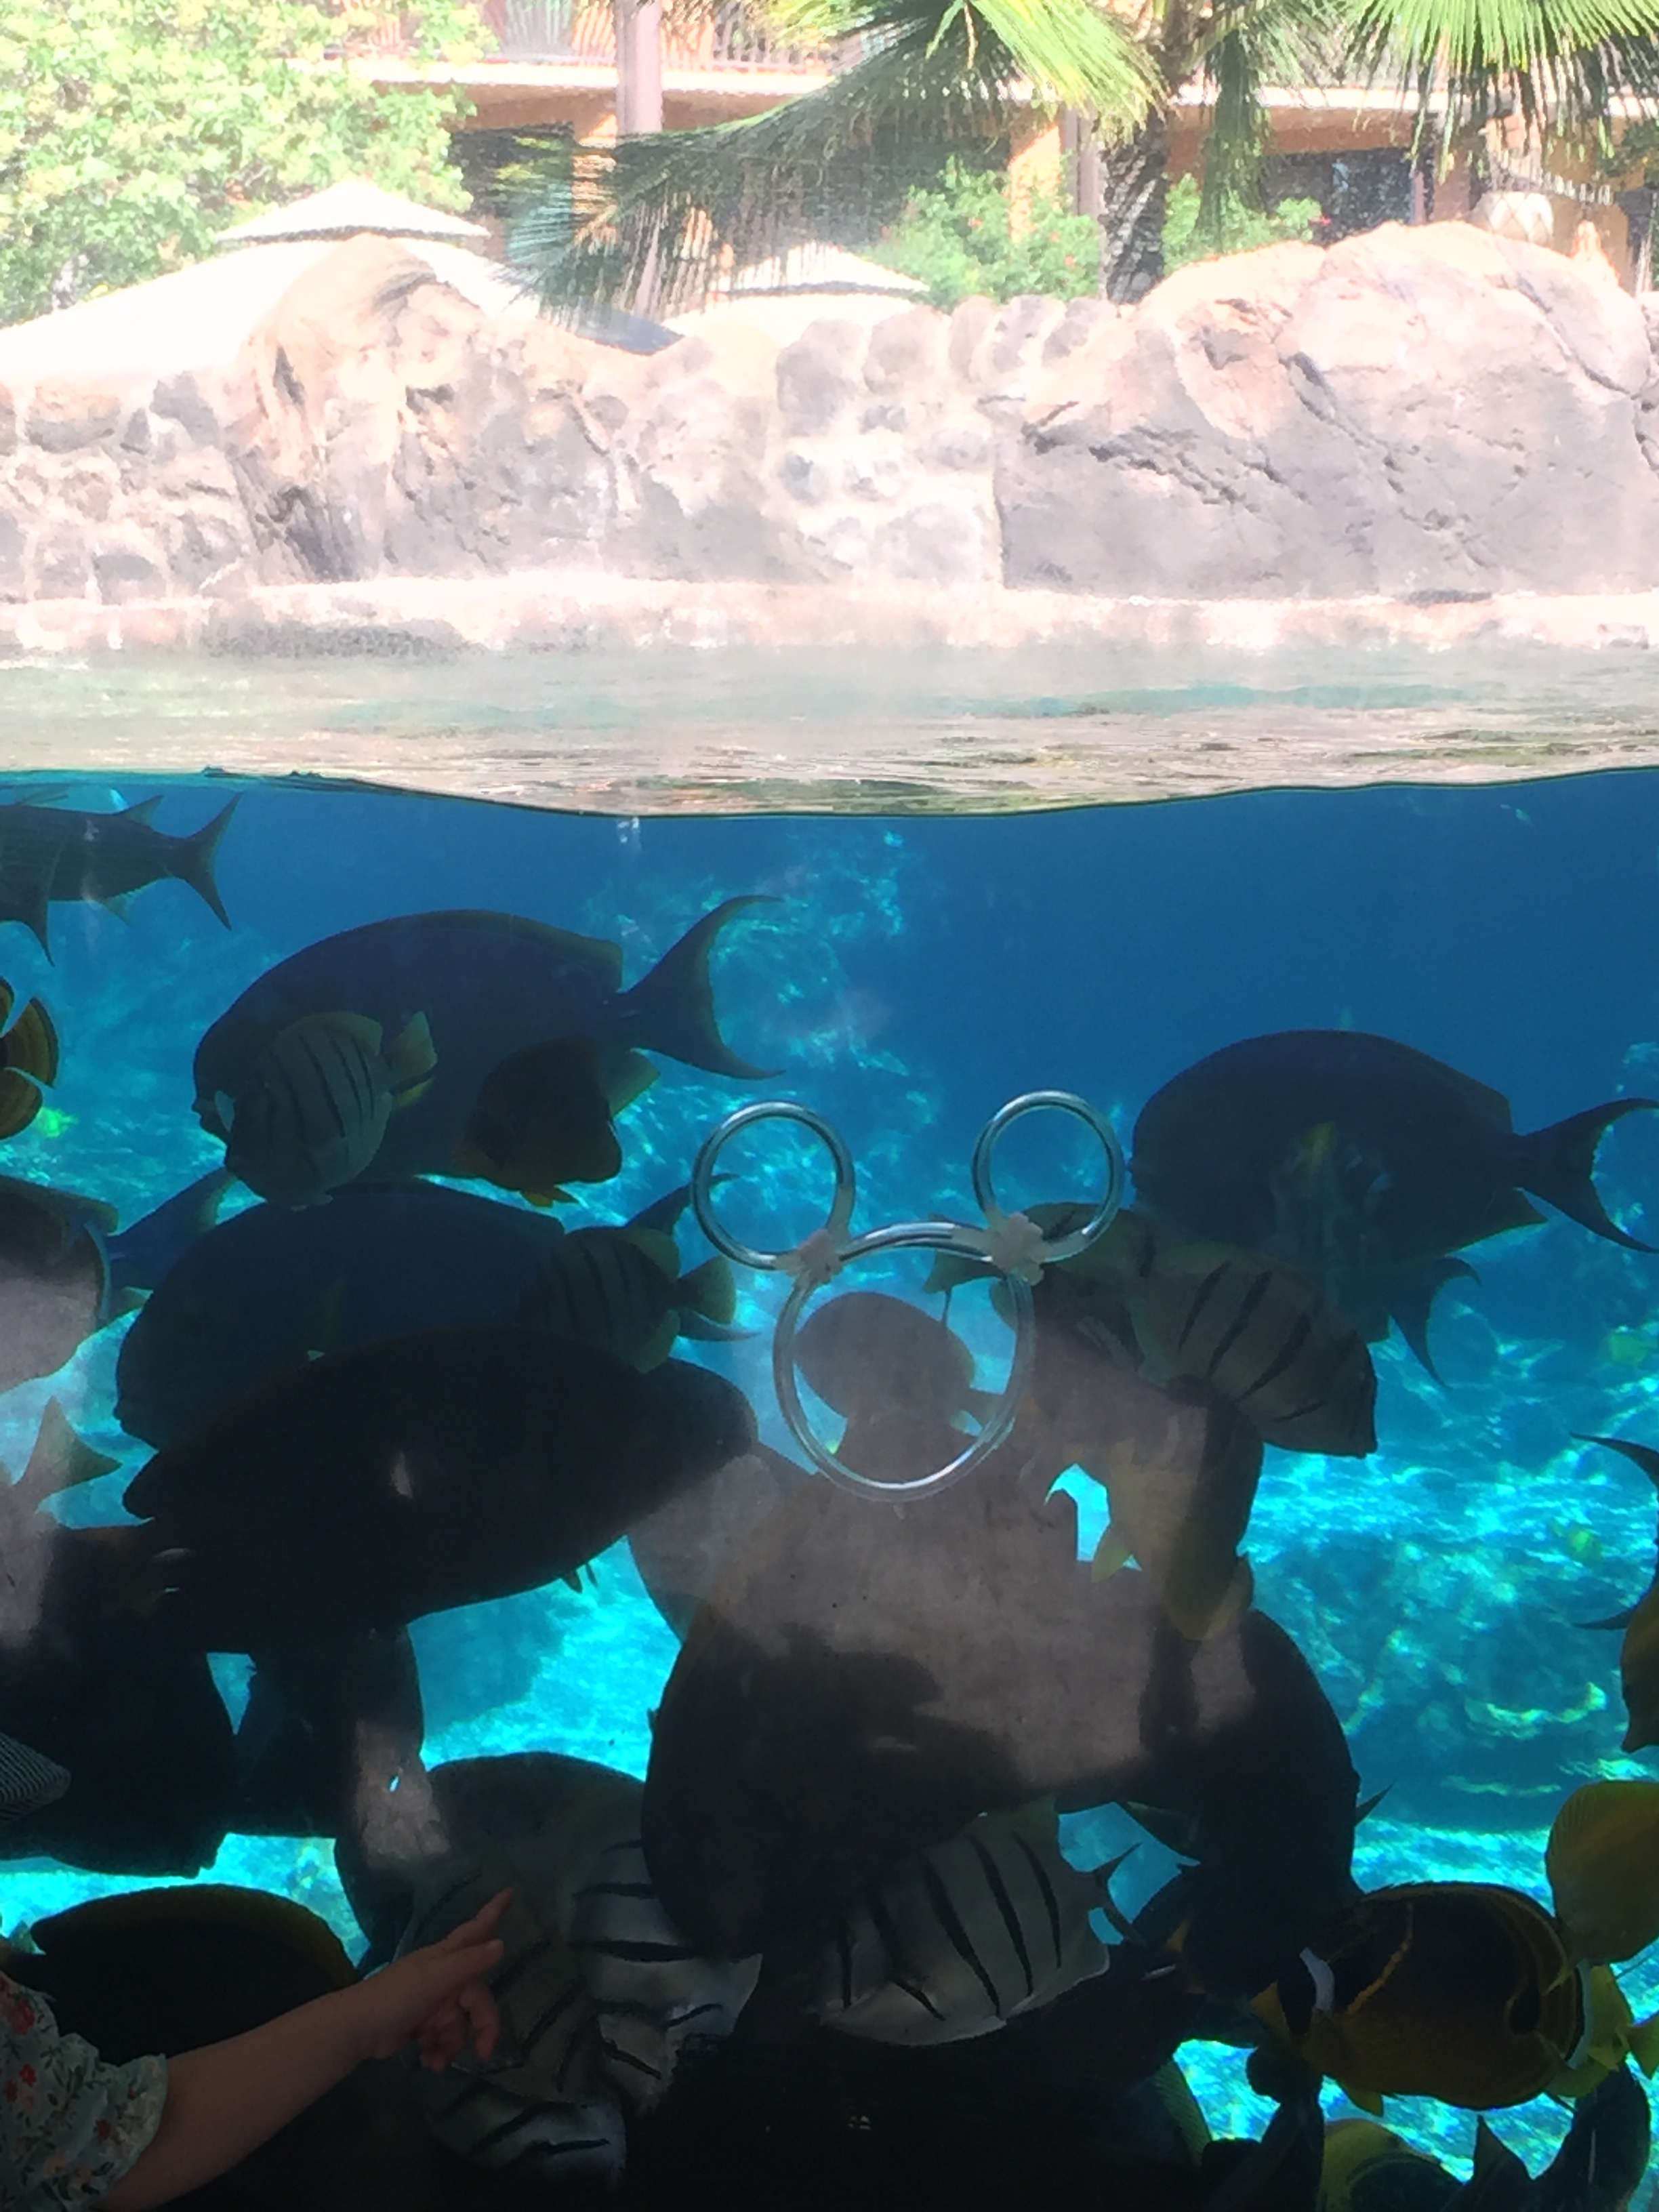 We found a hidden Mickey in the snorkeling cove!